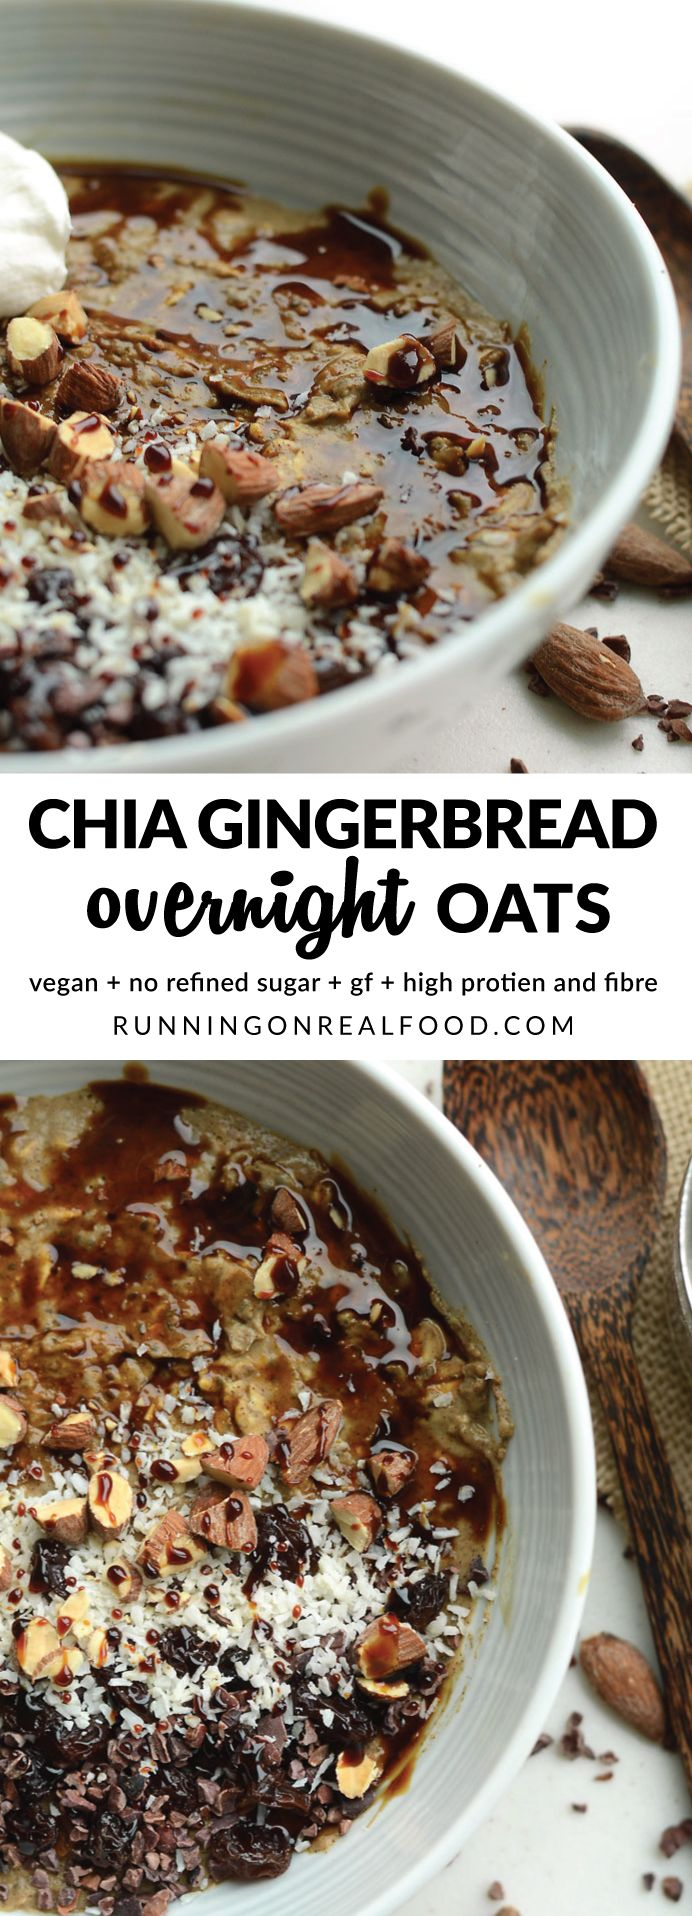 These incredible gingerbread overnight oats with protein and chia seed taste like gingerbread cookie dough! High in fibre and plant-based protein, healthy fats from chia seeds and energizing carbohydrates from oats and molasses. If you love gingerbread, you will love these overnight oats! Vegan, gluten-free, no refined sugar. via @runonrealfood